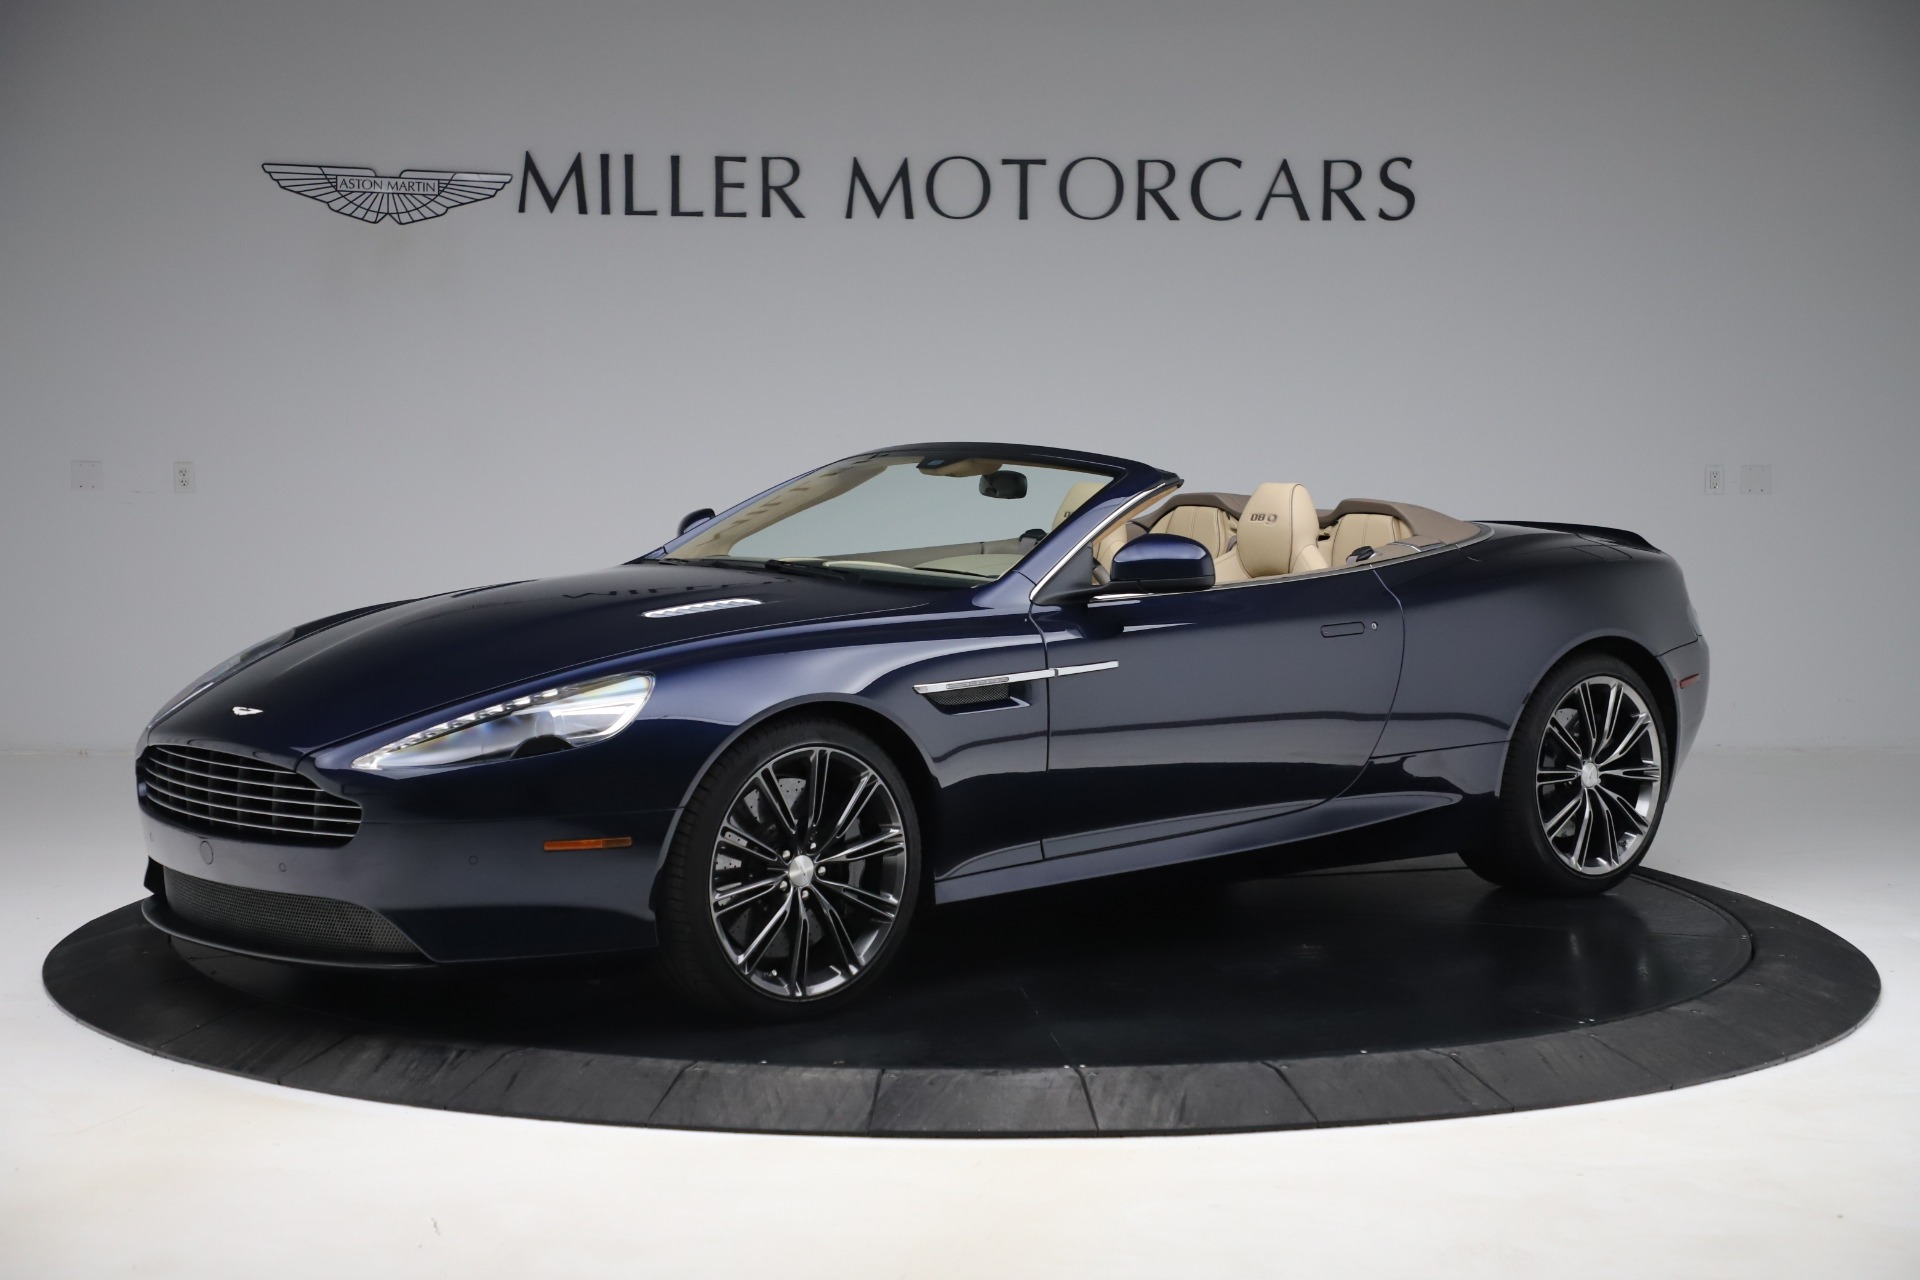 Used 2014 Aston Martin DB9 Volante For Sale In Westport, CT 3591_p2